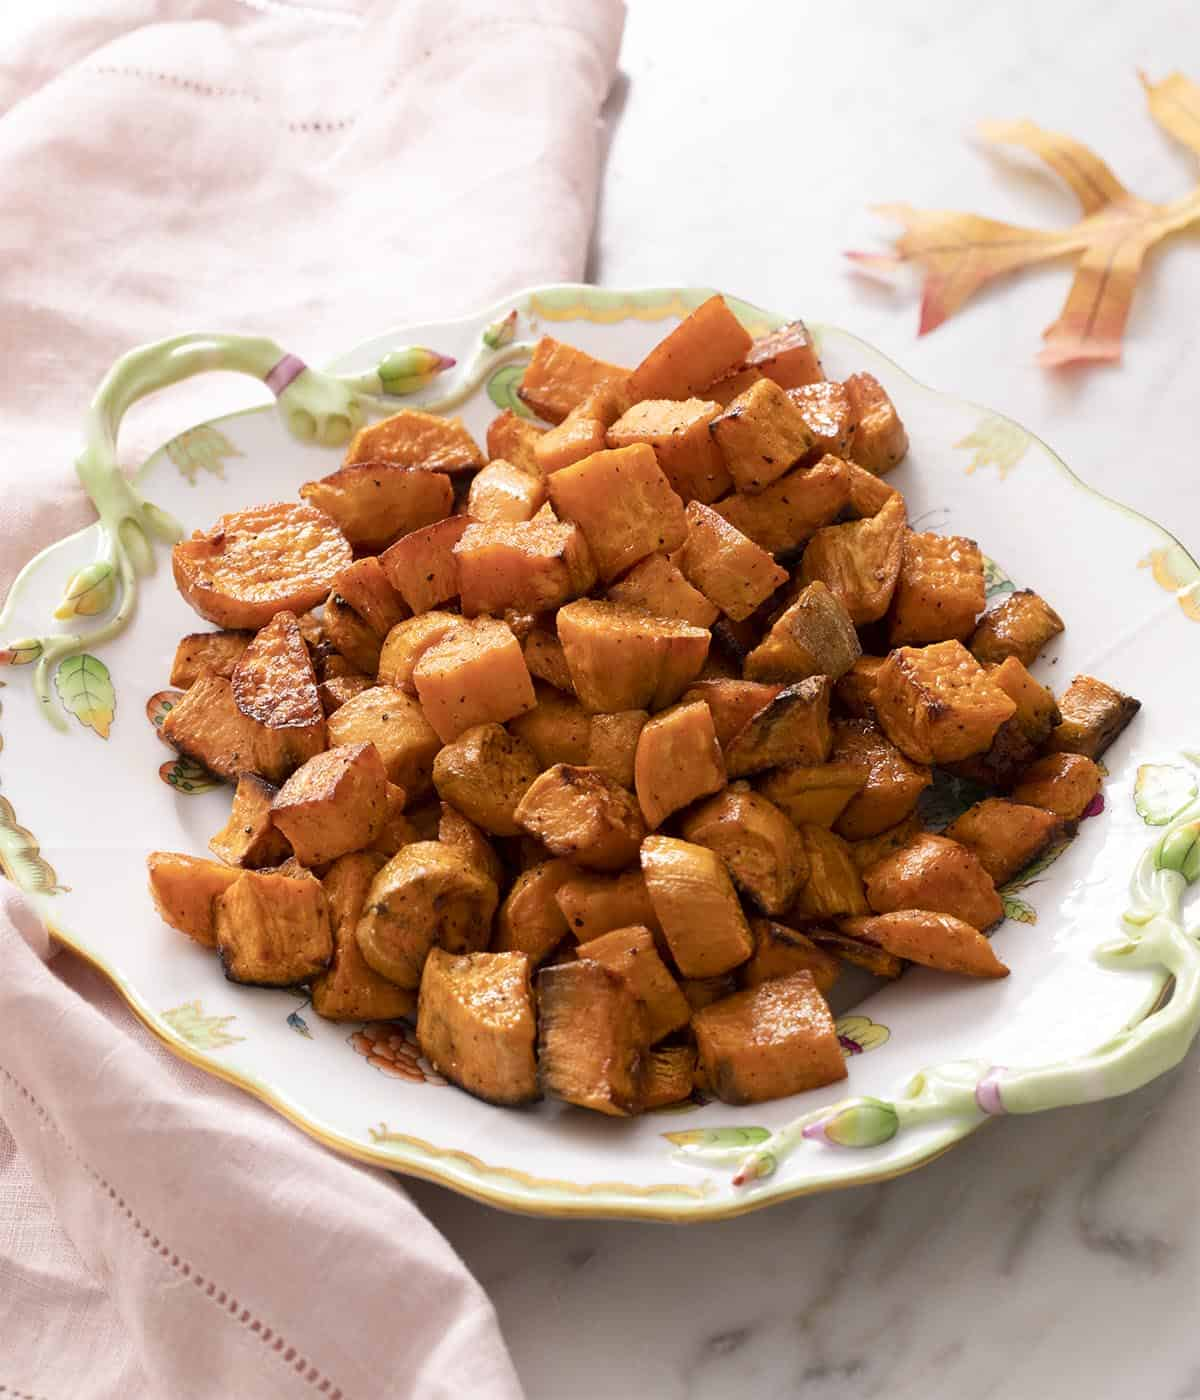 Roasted sweet potatoes on a white serving dish.